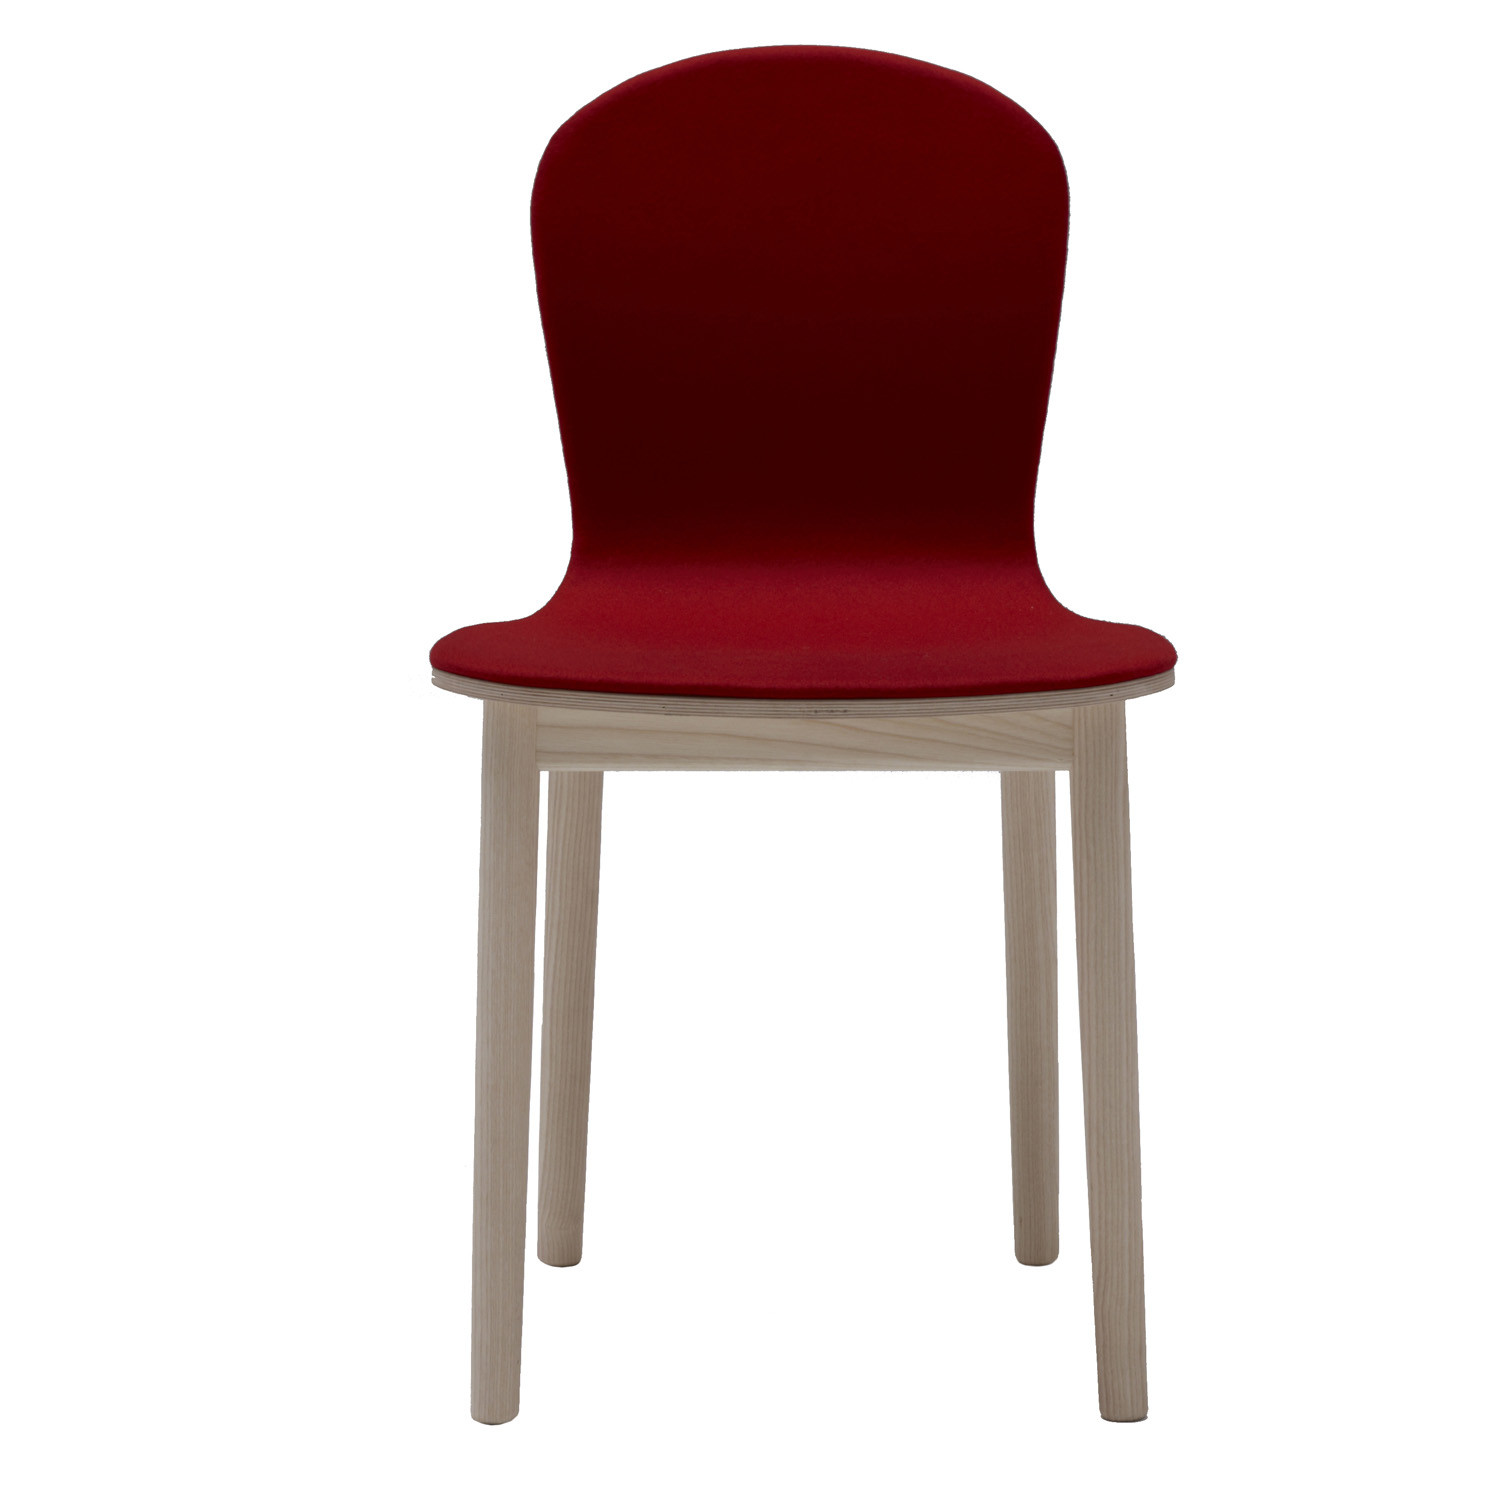 Bac Two Chair by Cappellini